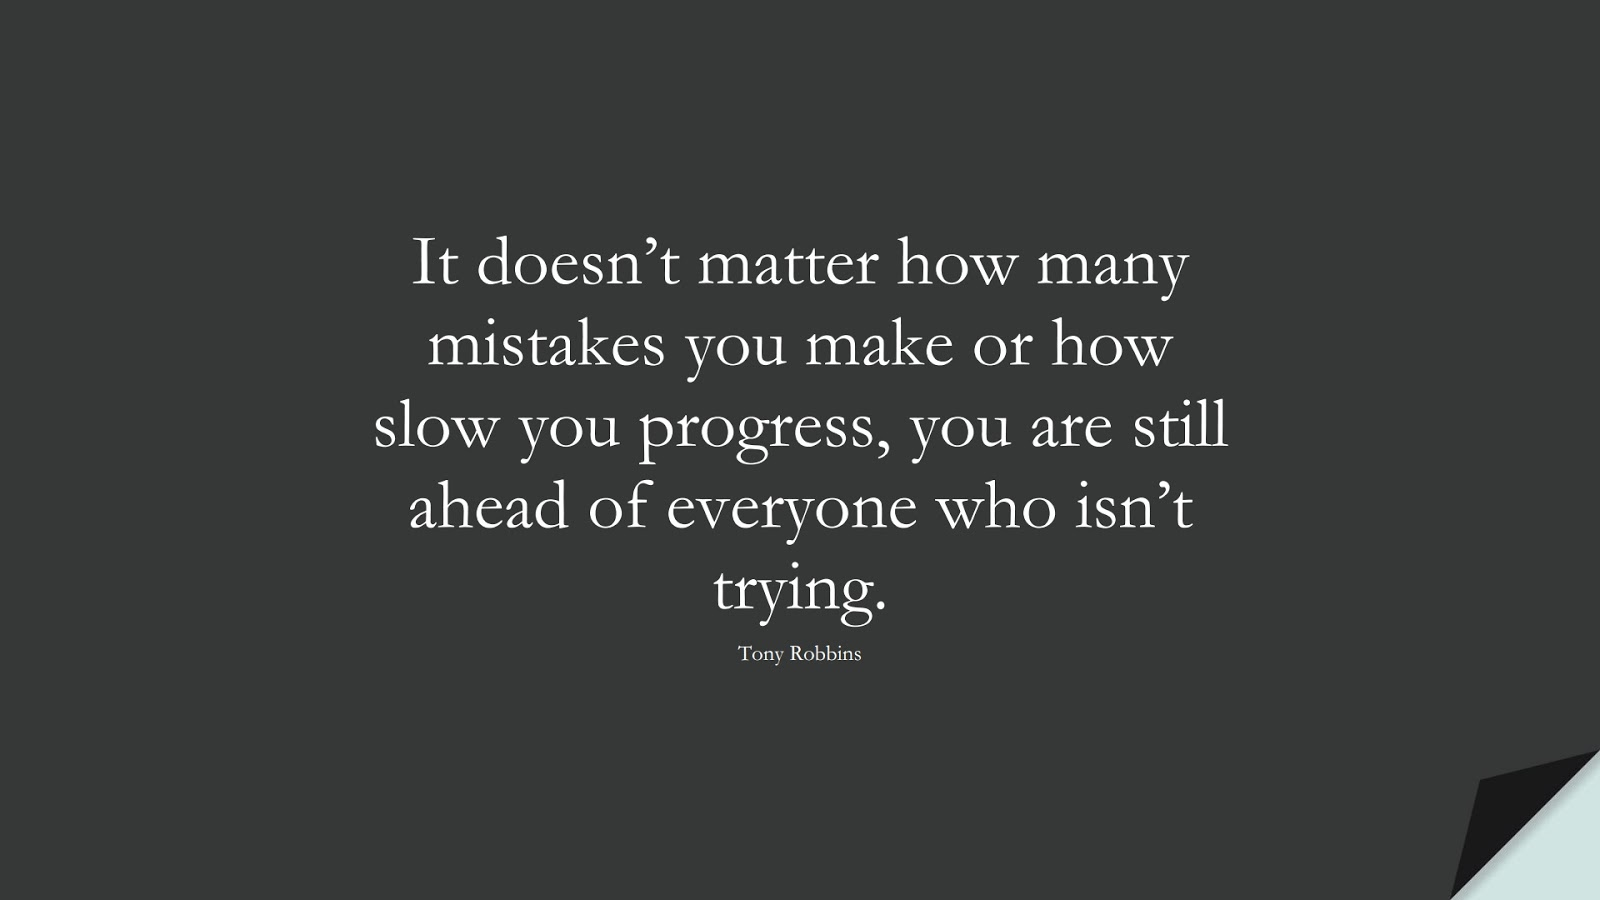 It doesn't matter how many mistakes you make or how slow you progress, you are still ahead of everyone who isn't trying. (Tony Robbins);  #MotivationalQuotes